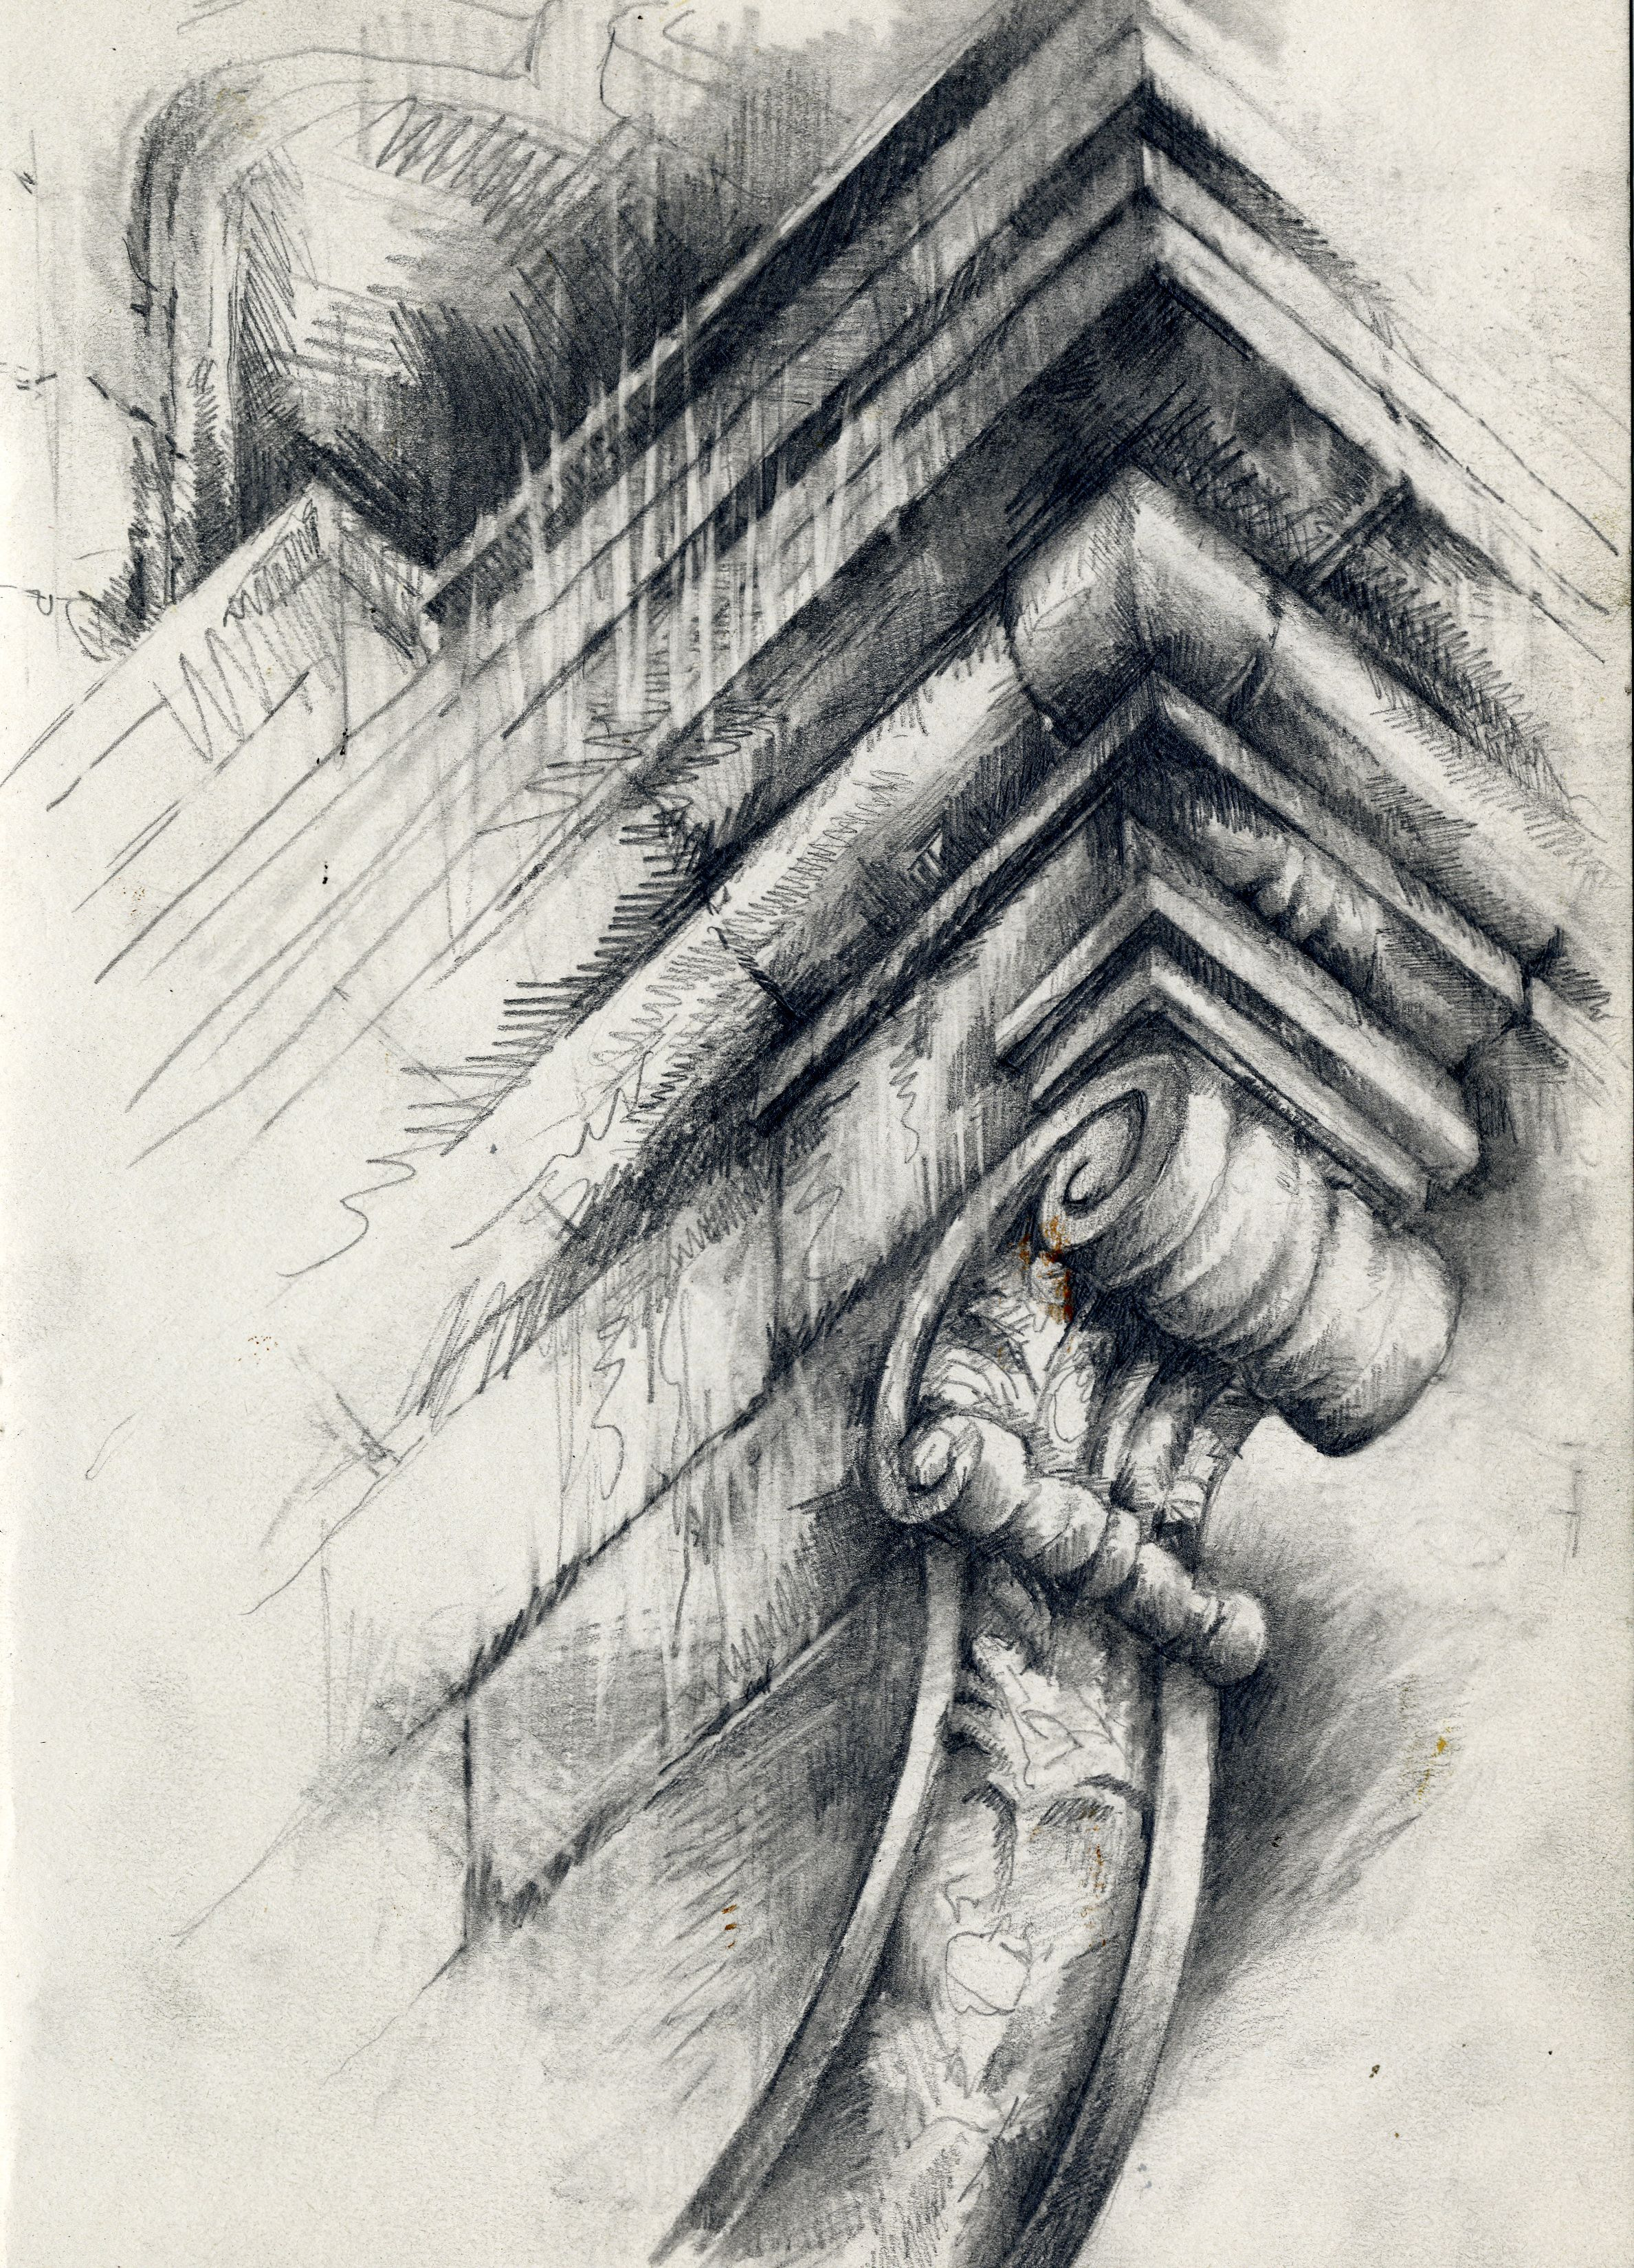 Great Example Of How A High Level Of Detail Can Be Portrayed With A Charcoal